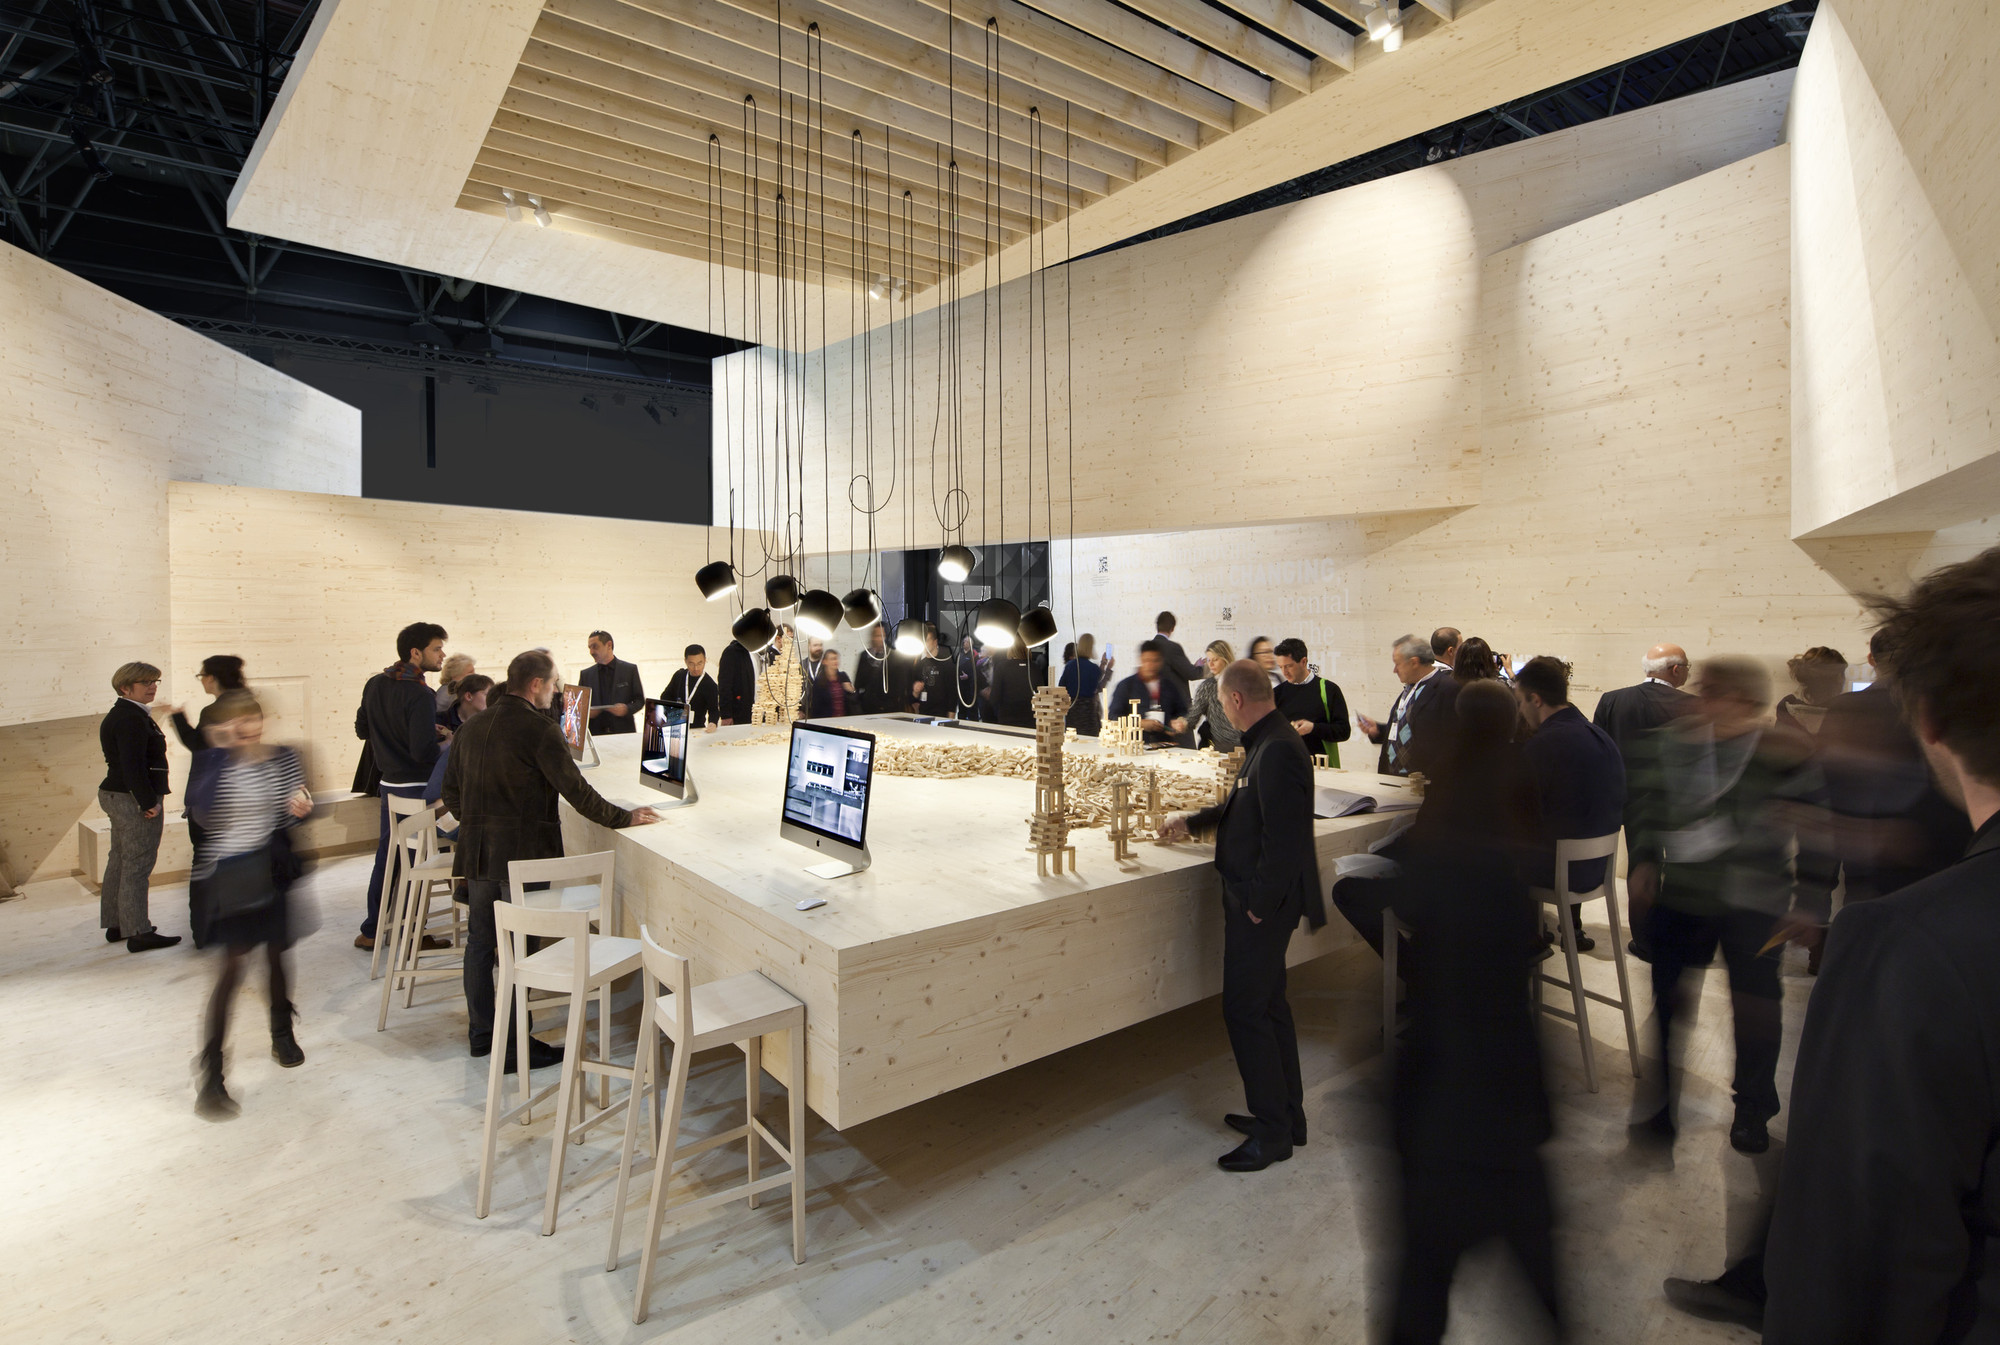 Genesis D Exhibition Design : Euroshop stand d art design gruppe archdaily